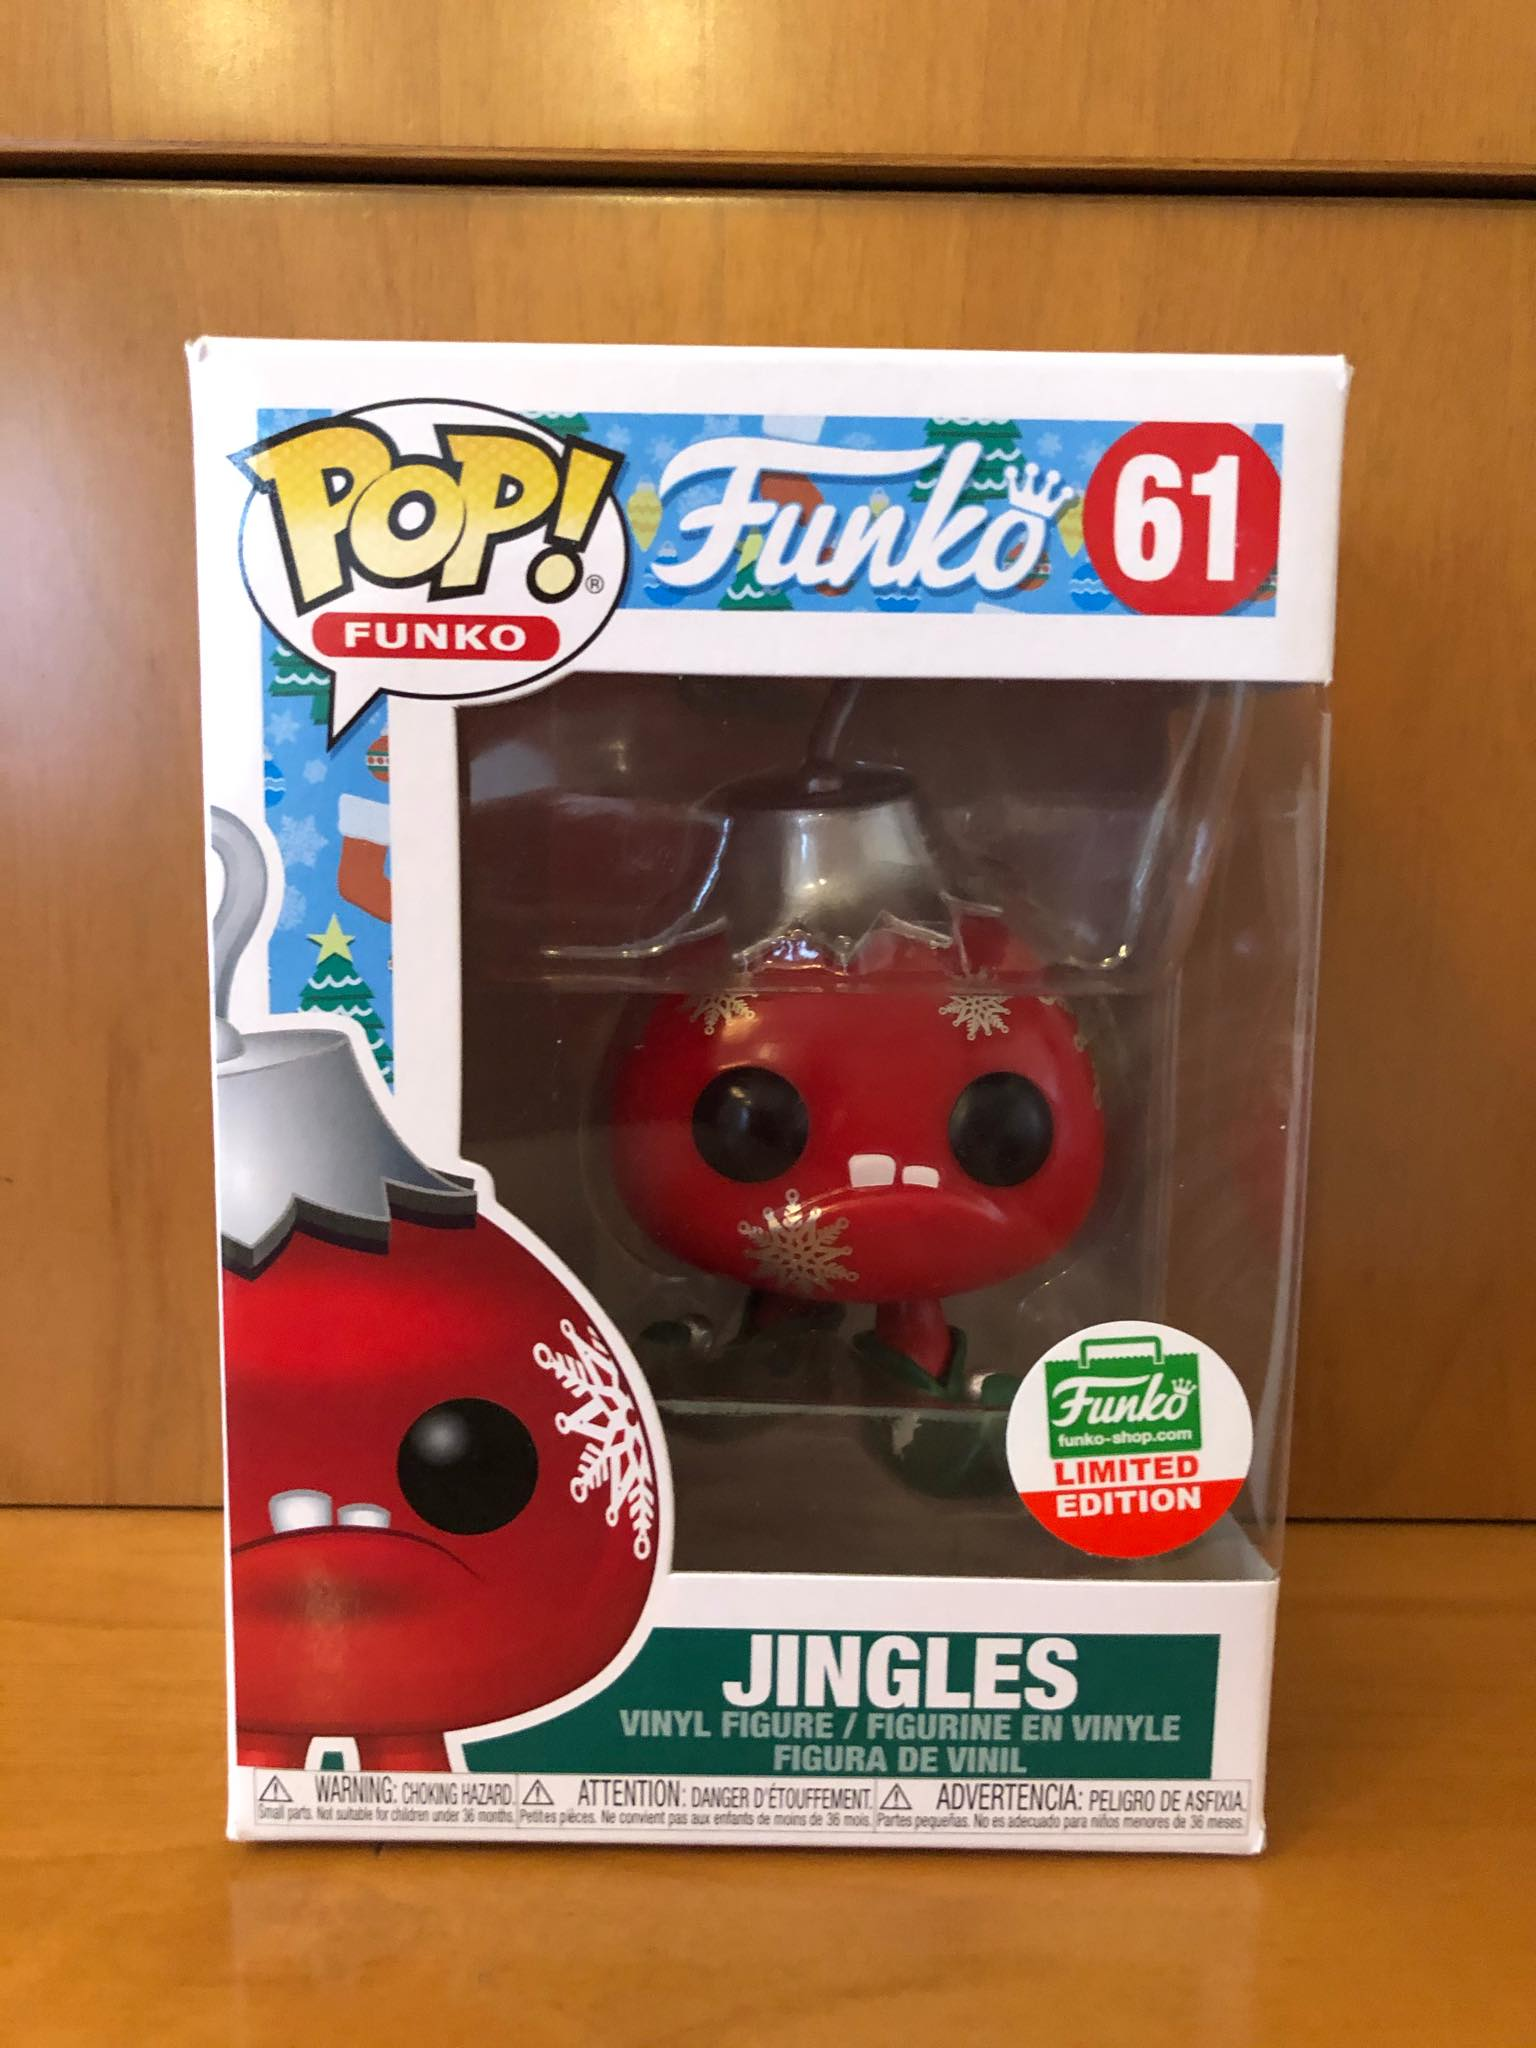 FUNKO - JINGLES - #61 (FUNKO SHOP EXCLUSIVE) - FUNKO POP! VINYL - HDTOYS Shop